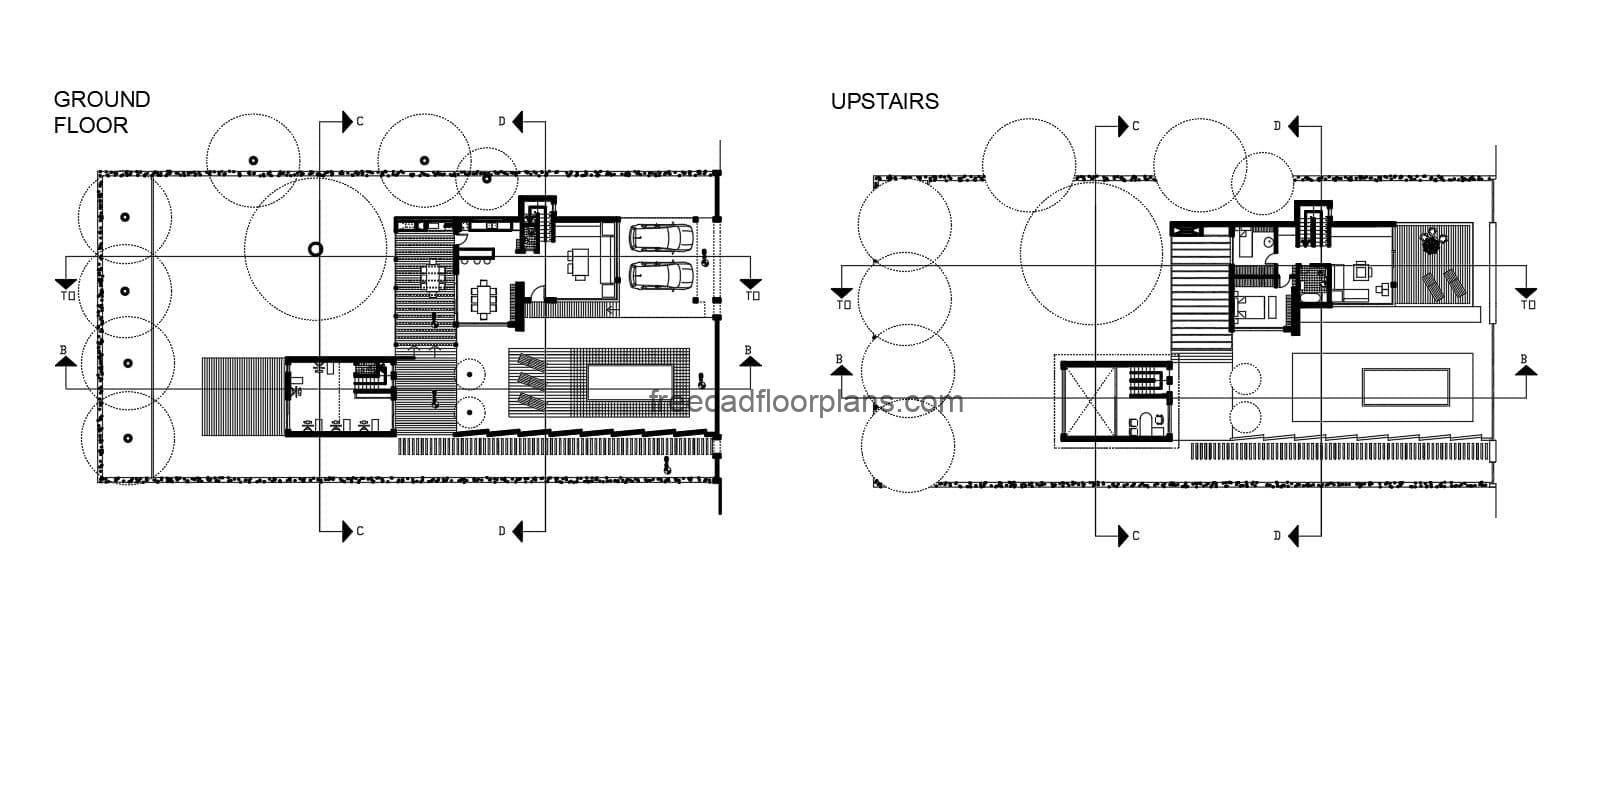 Complete 2D plan of Modern Two-Level Residence with Pool, Autocad DWG drawing with first and second level floor plan, front and side elevations and sections. The file also contains a 3D view of the AutoCAD drawing, plans for free download in DWG format, blocks and editable interior furniture.